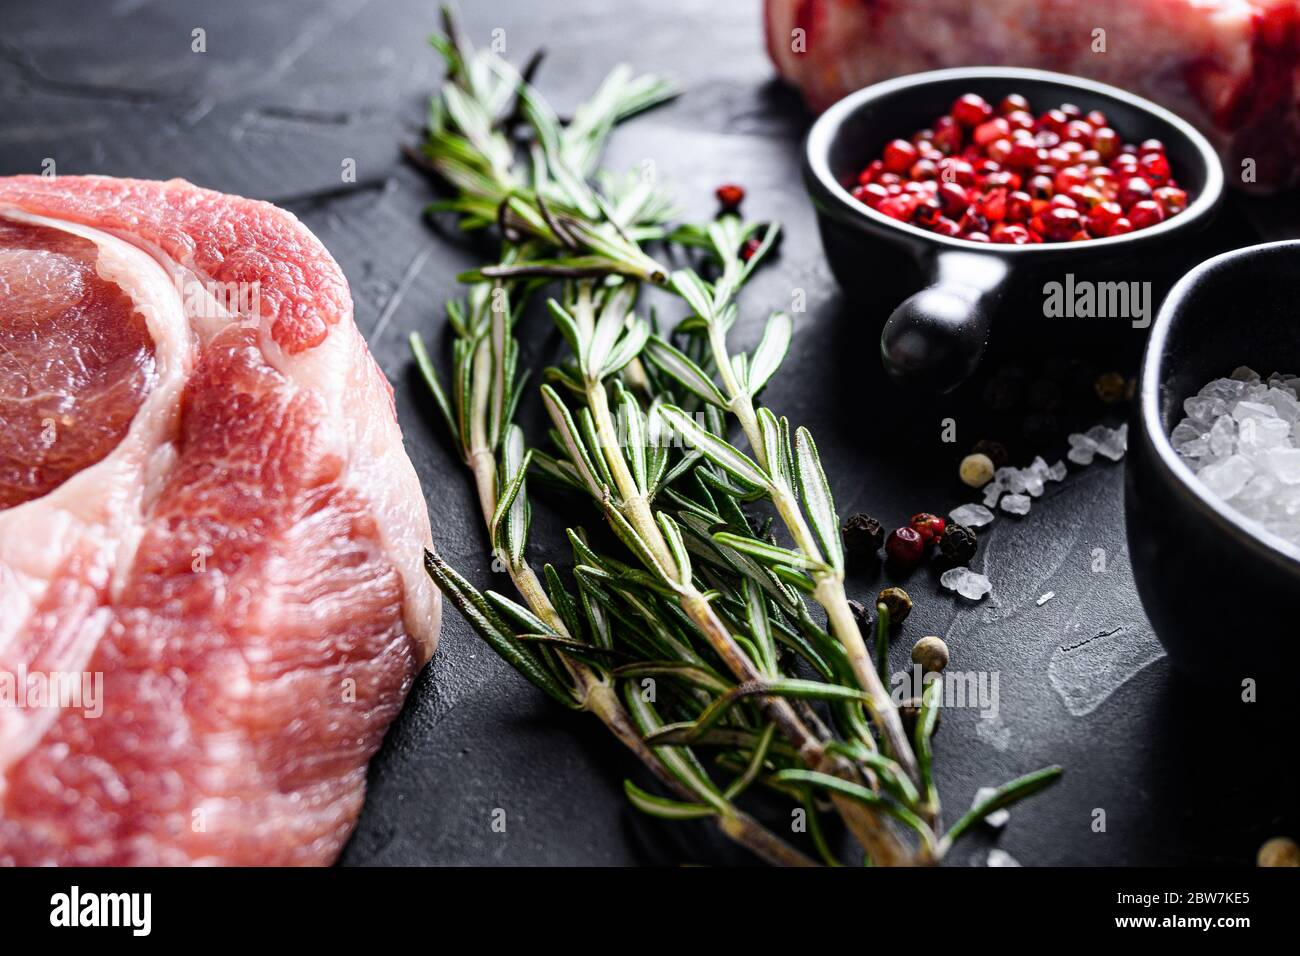 Rosemary herbs close up on black stone table with spices and raw meat near side view selective focus. Stock Photo